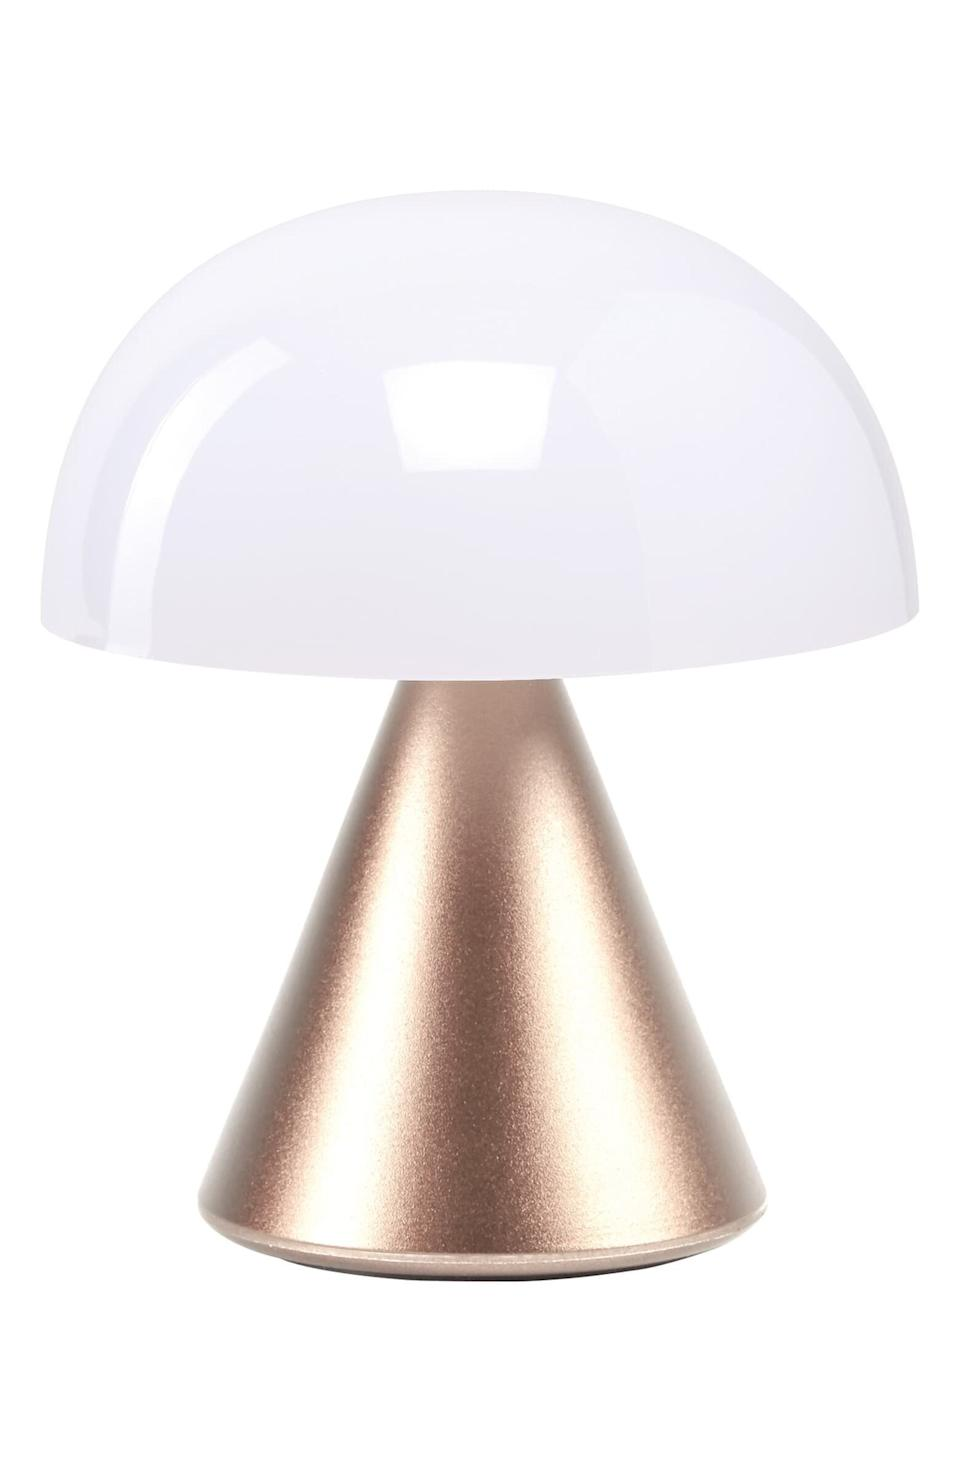 """This portable LED lamp featureswarm and cool settings, a dimmer setting and a six-hour battery life. It comes with a USB-charging cable and LED bulb.Plus, it has an Art Deco vibe that's <a href=""""https://www.washingtonpost.com/lifestyle/magazine/a-century-after-art-decos-birth-designers-say-were-due-for-a-revival/2020/04/01/8b0e1826-5d7f-11ea-b014-4fafa866bb81_story.html"""" target=""""_blank"""" rel=""""noopener noreferrer"""">pretty popular</a> right now.<a href=""""https://fave.co/32zqgJf"""" target=""""_blank"""" rel=""""noopener noreferrer"""">Find it for $30 at Nordstrom</a>."""